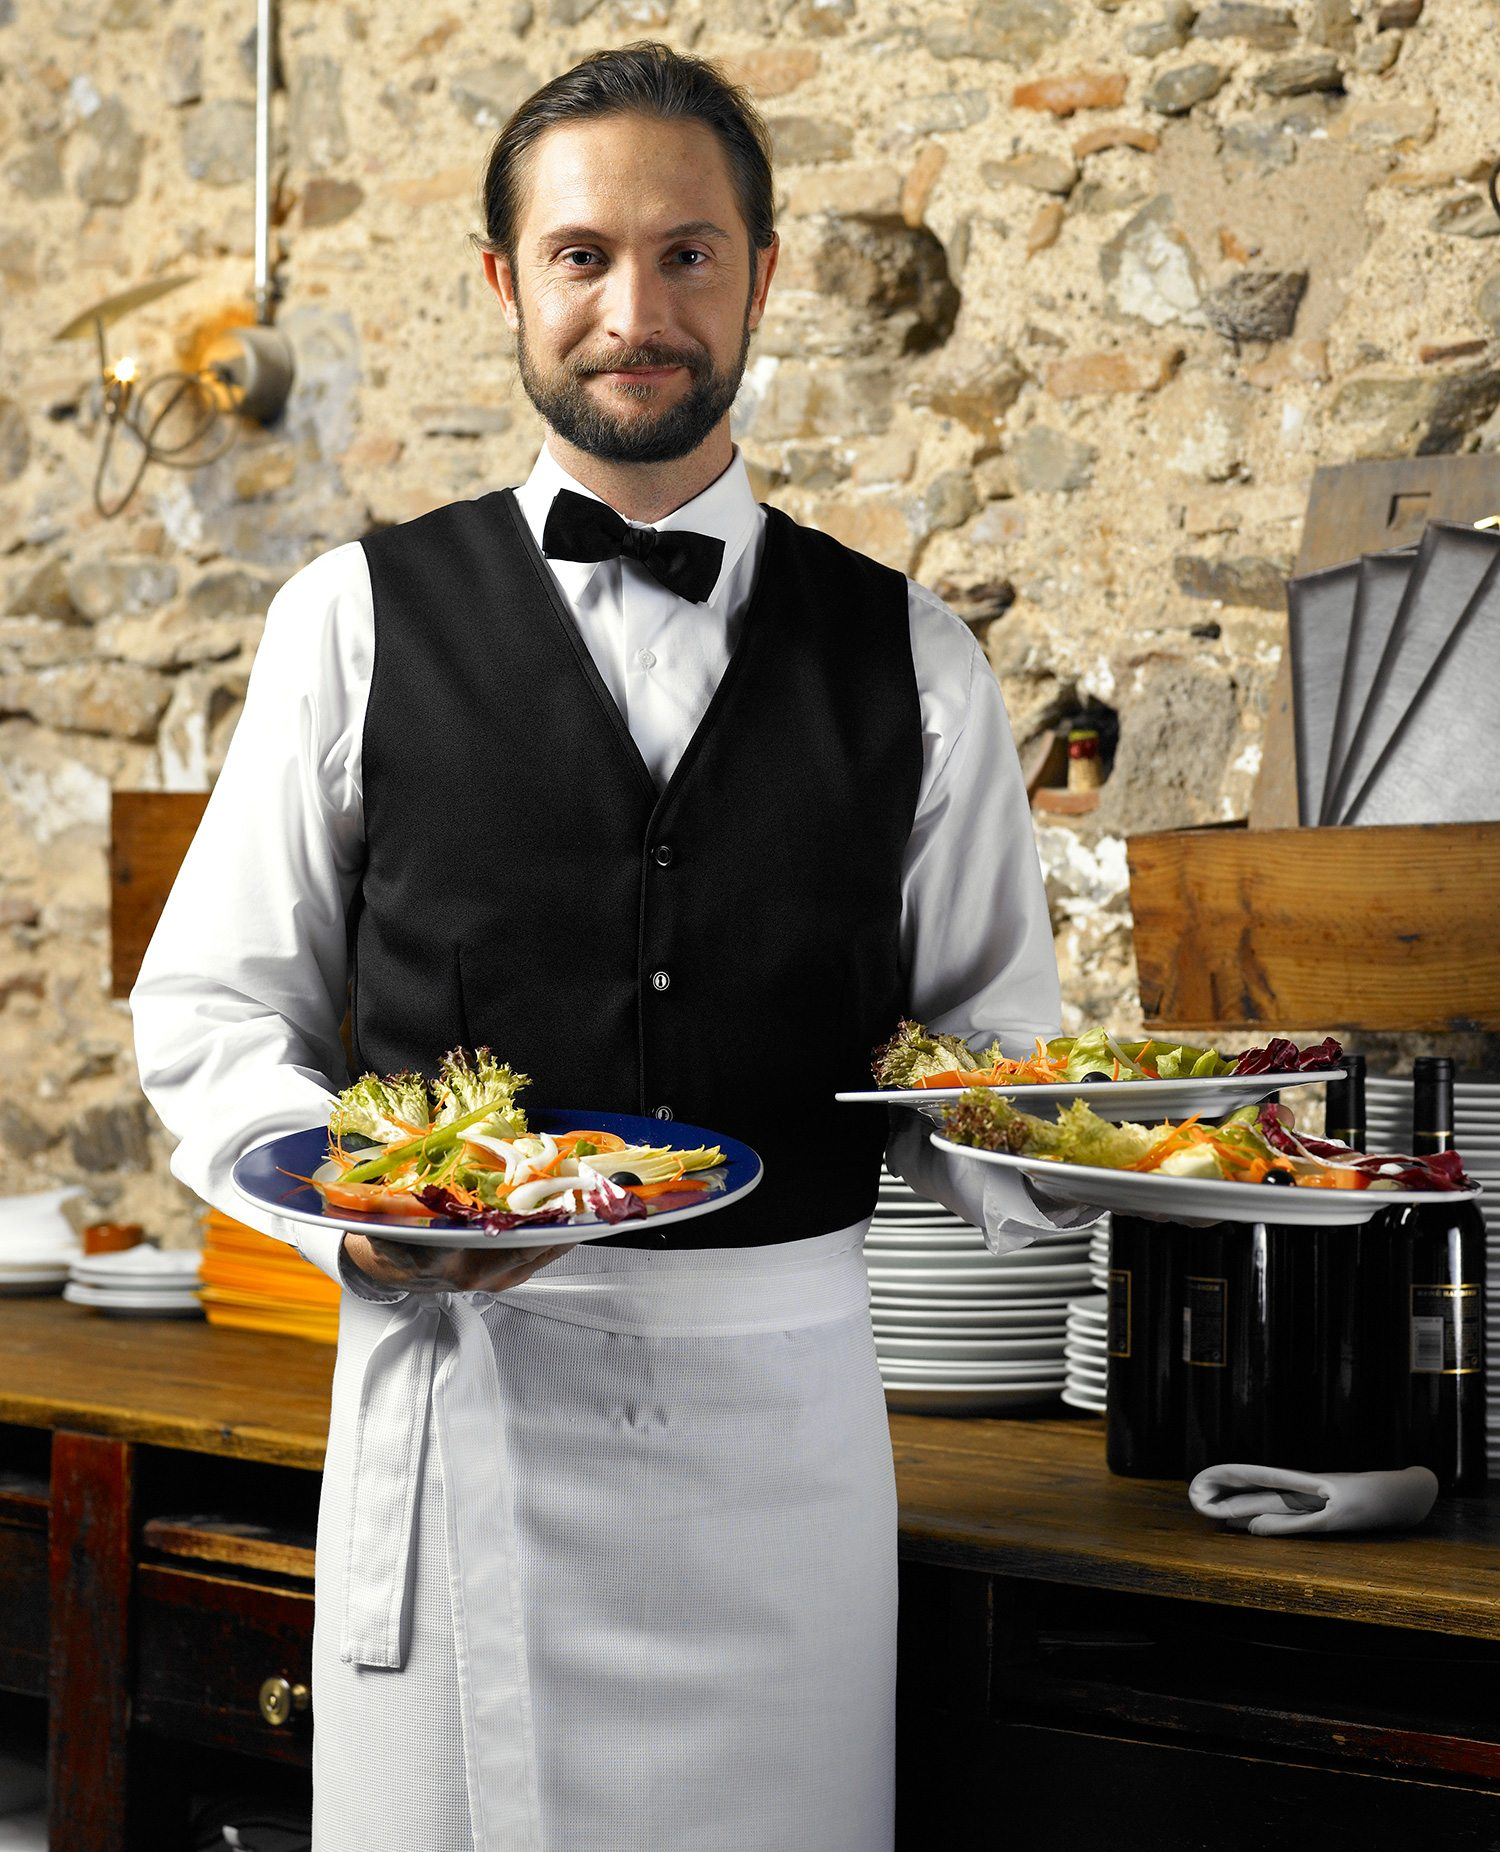 Dinners Eat More Food Served By Heavy Waiters!